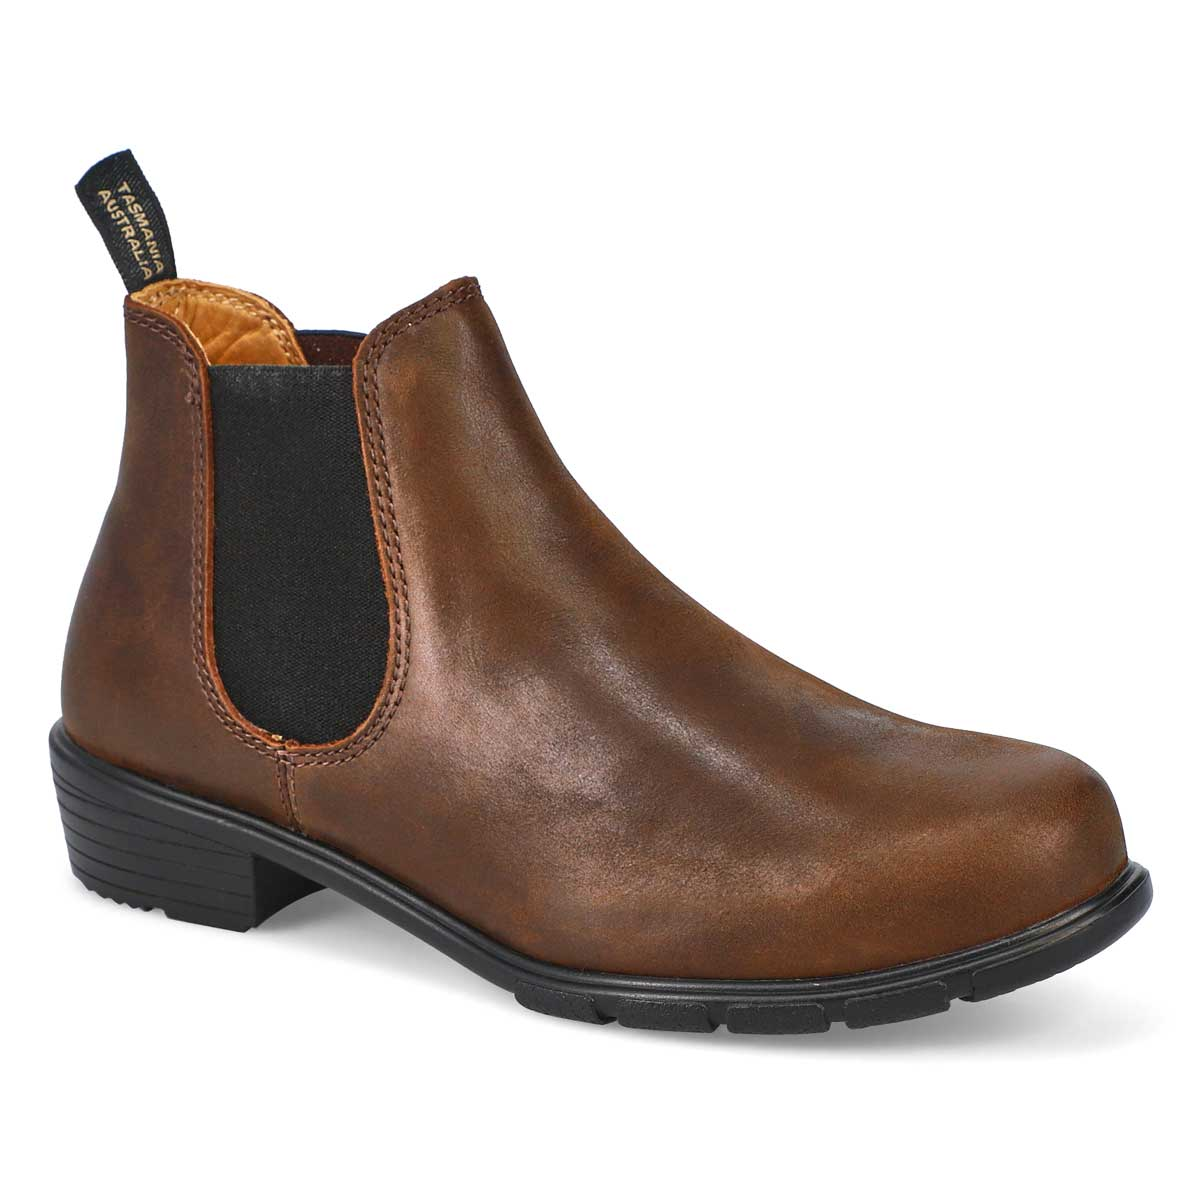 Women's 1970 The Ankle Boot - Brown